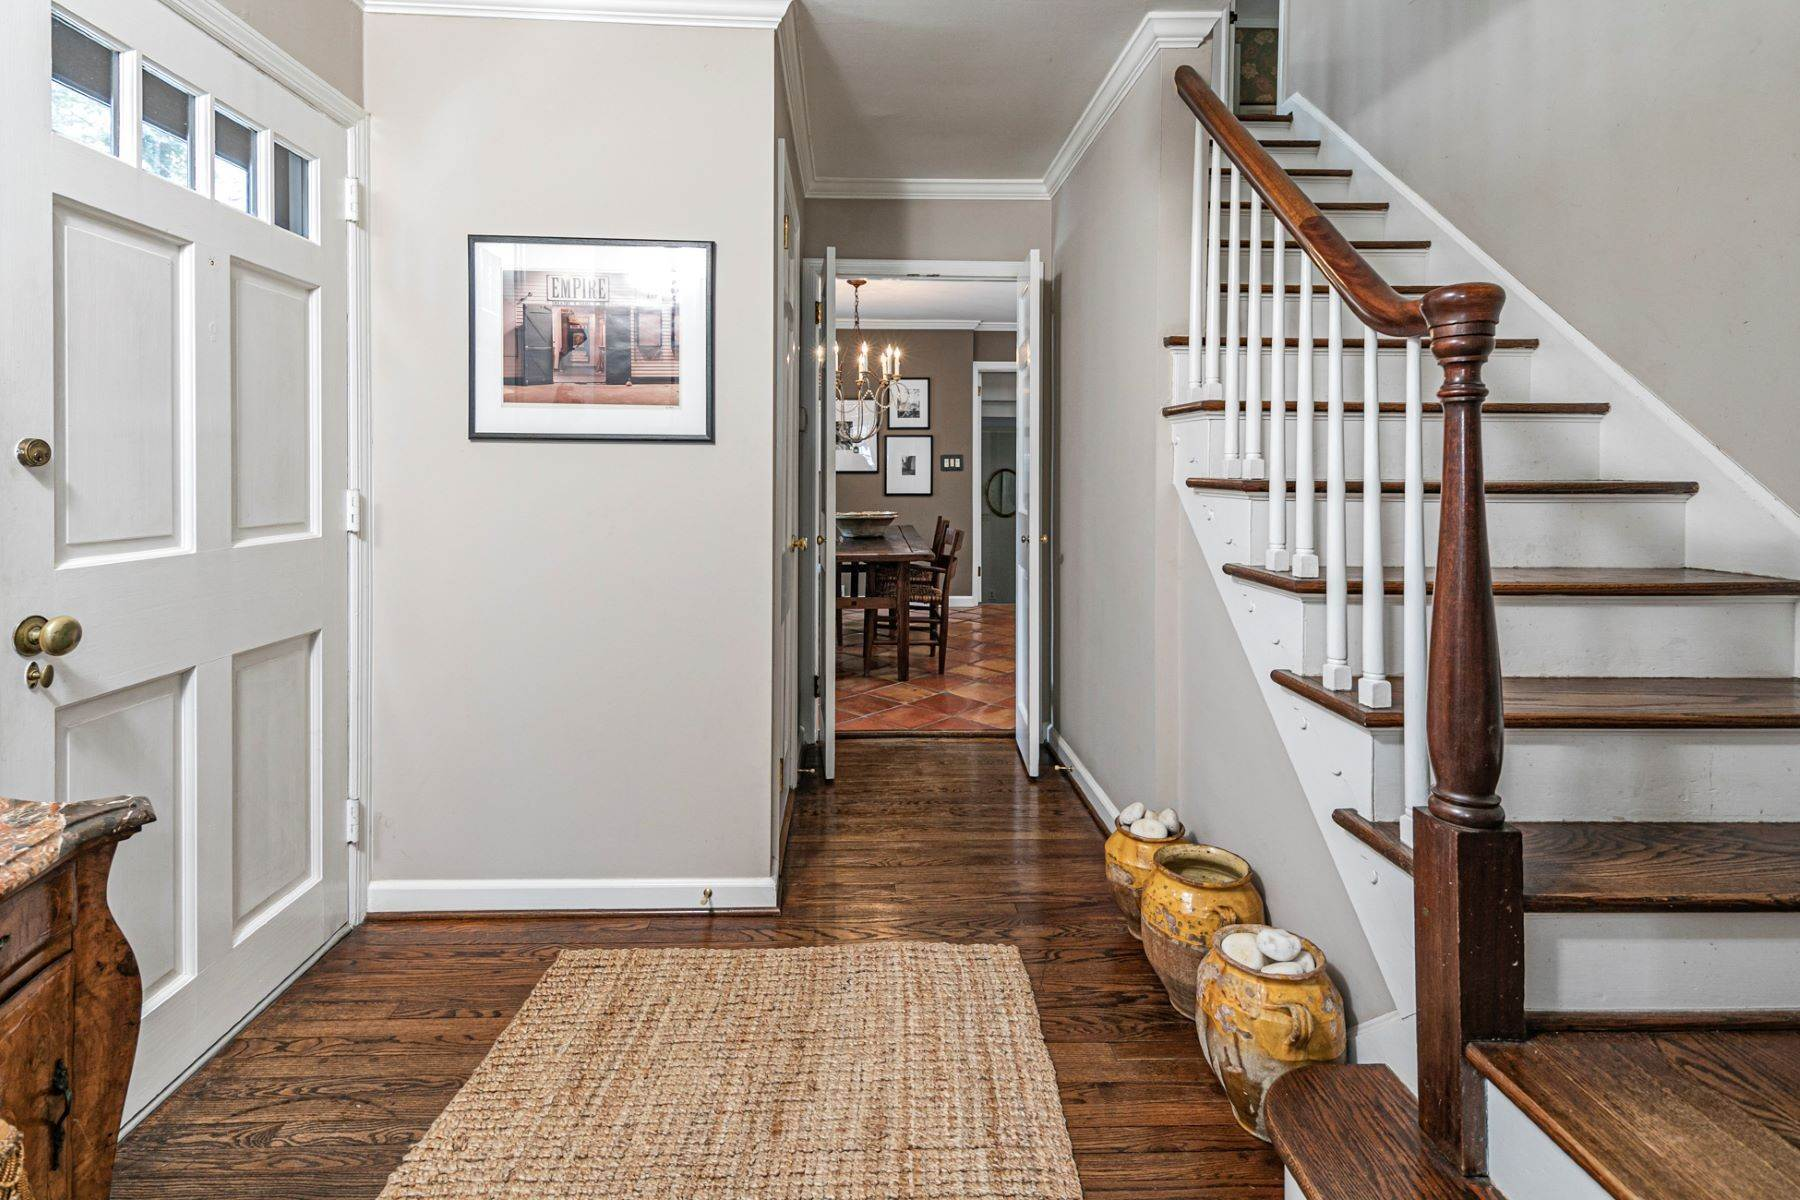 3. Single Family Homes for Sale at Poised And Polished In A Terrific Part Of Town 16 Hunter Road, Princeton, New Jersey 08540 United States